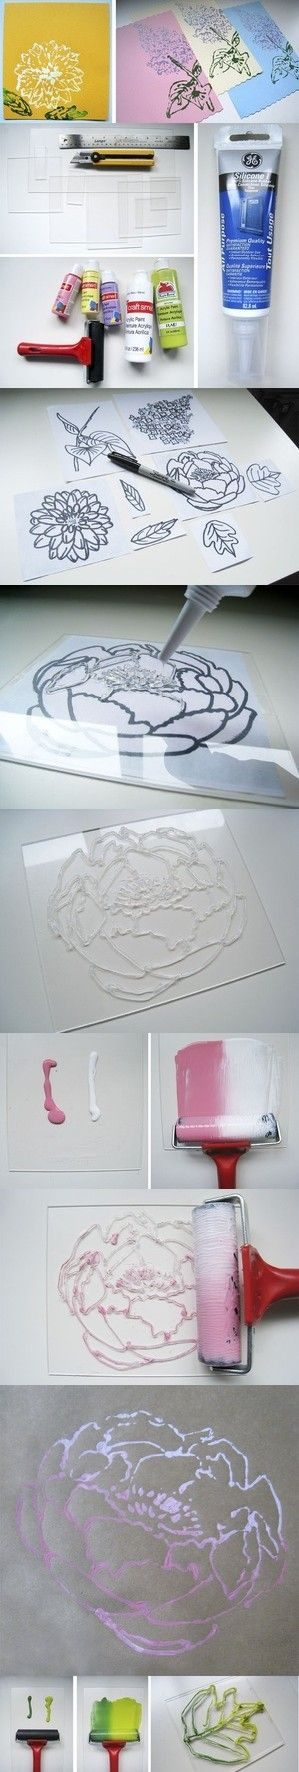 flower paintings by tracing and creating raised drawing, then stamping with paint